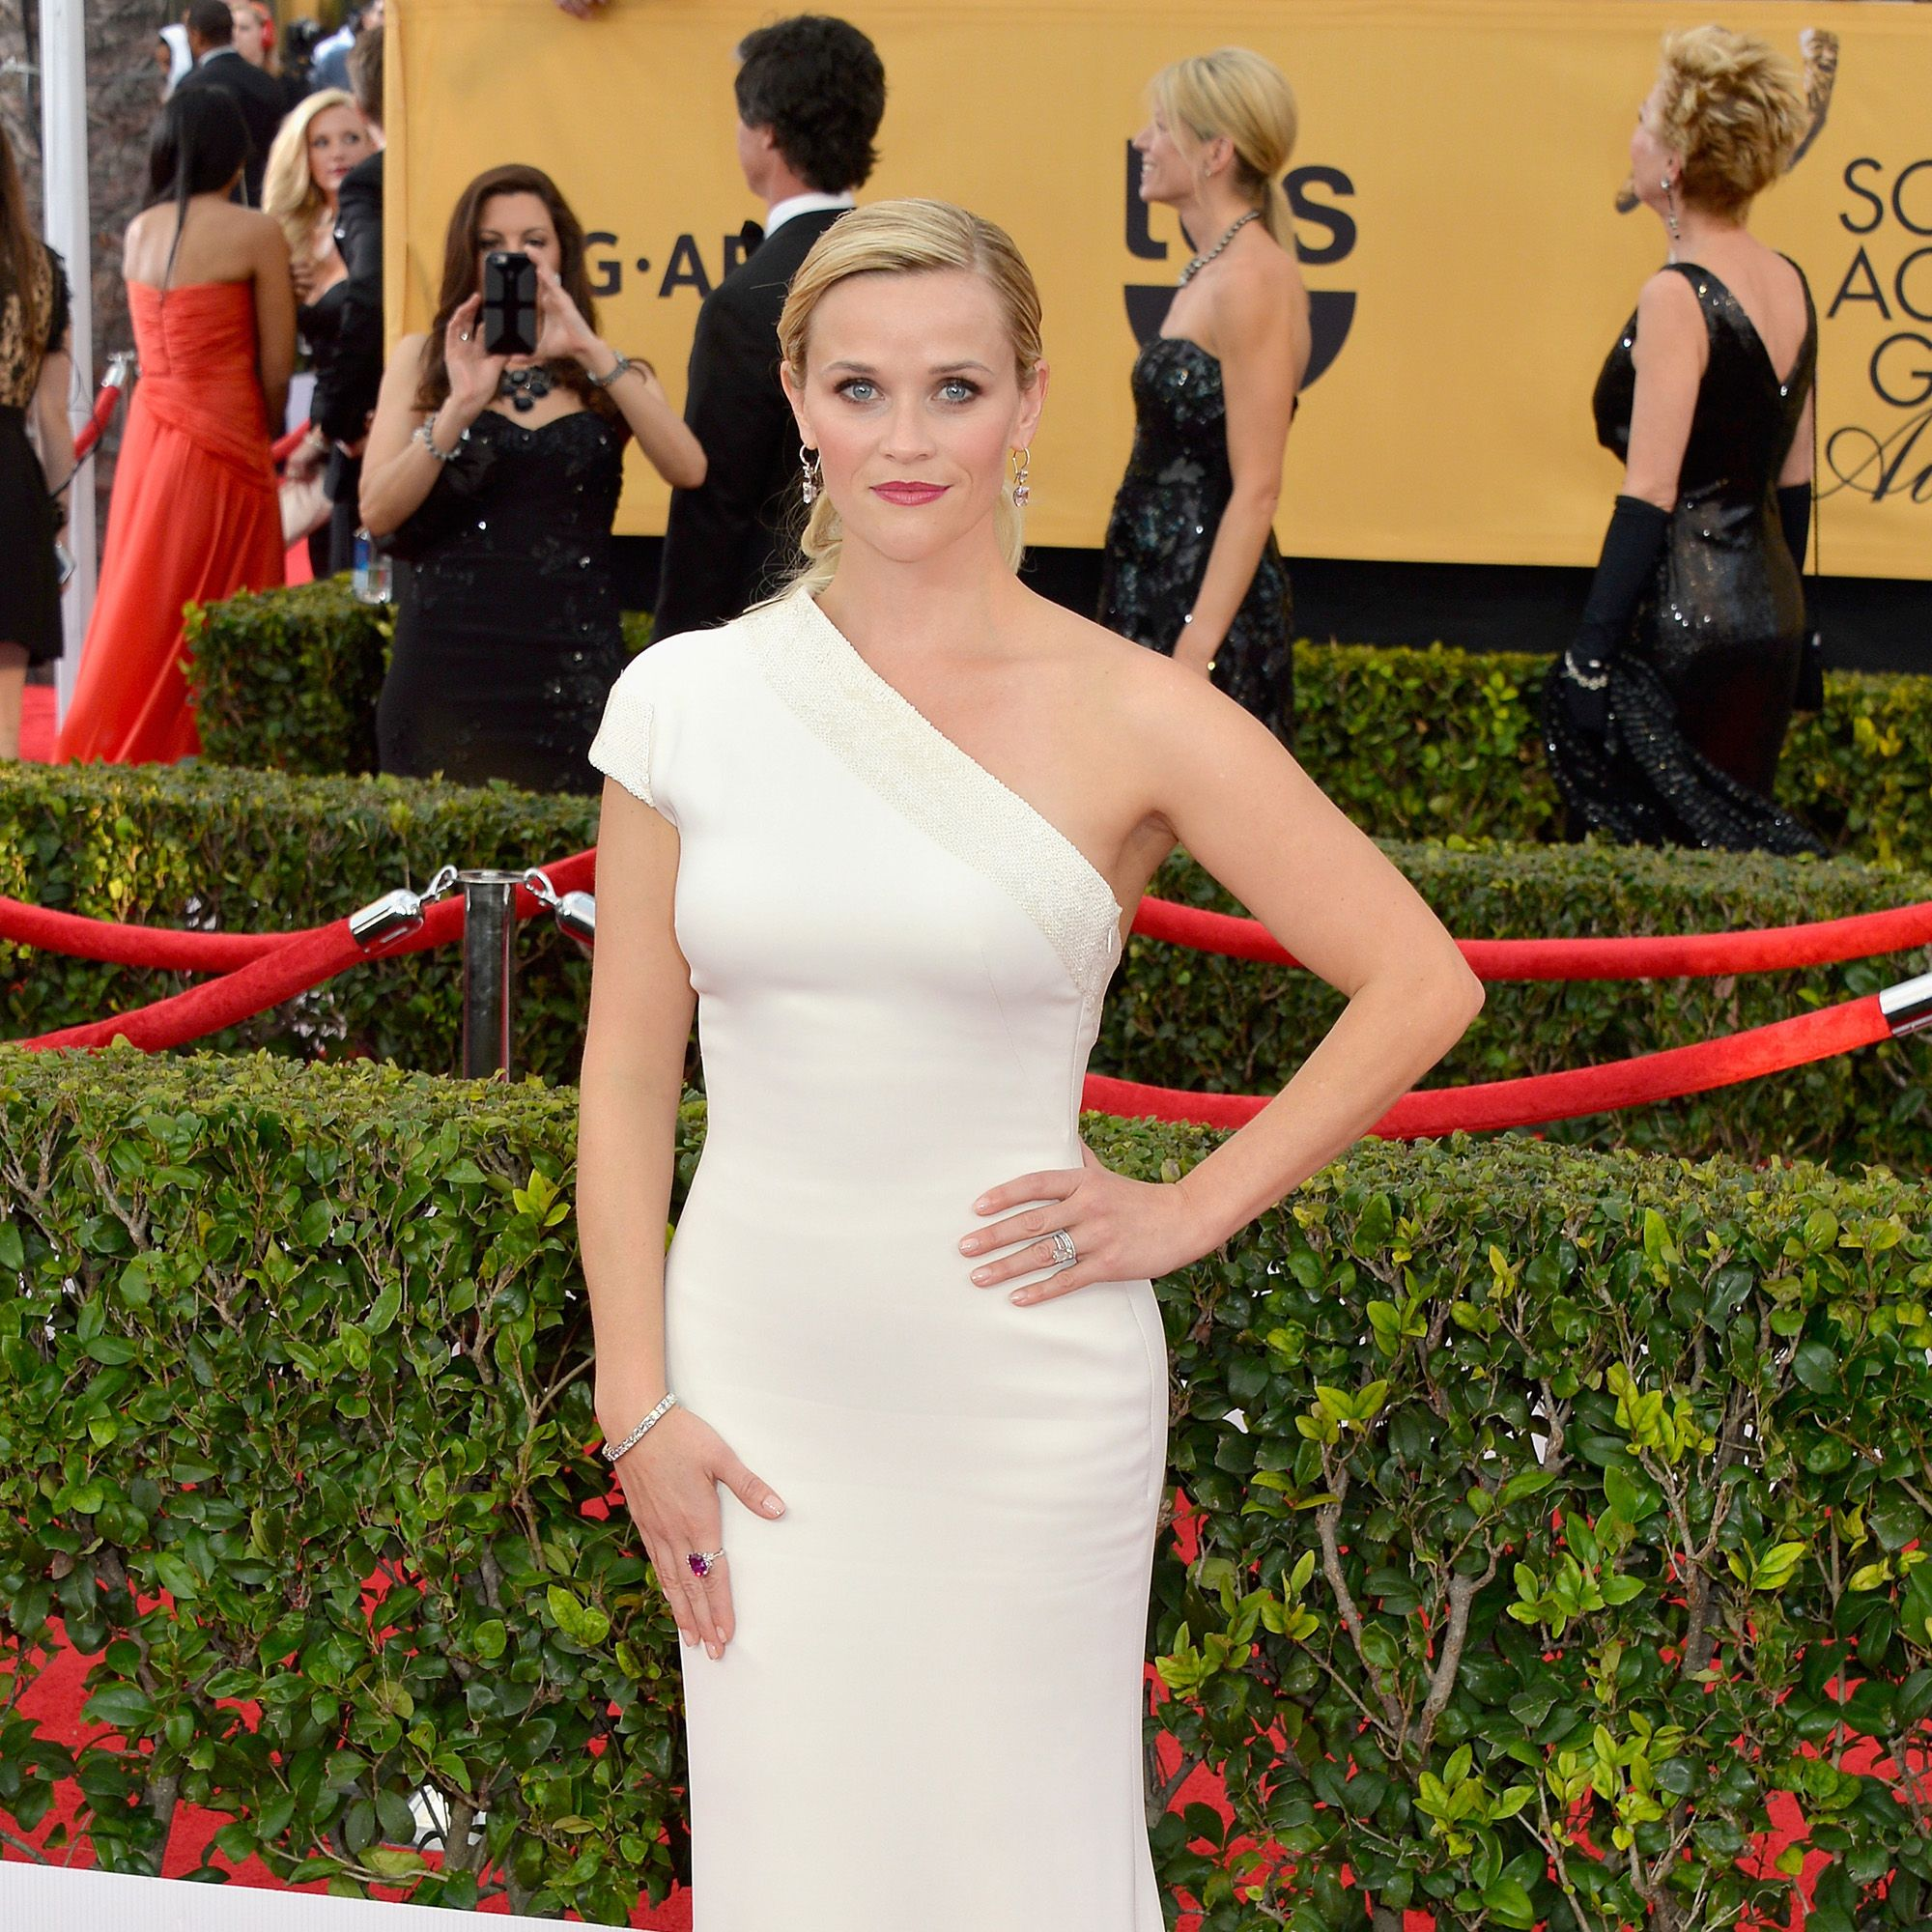 LOS ANGELES, CA - JANUARY 25:  Actress Reese Witherspoon attends the 21st Annual Screen Actors Guild Awards at The Shrine Auditorium on January 25, 2015 in Los Angeles, California.  (Photo by Lester Cohen/WireImage)